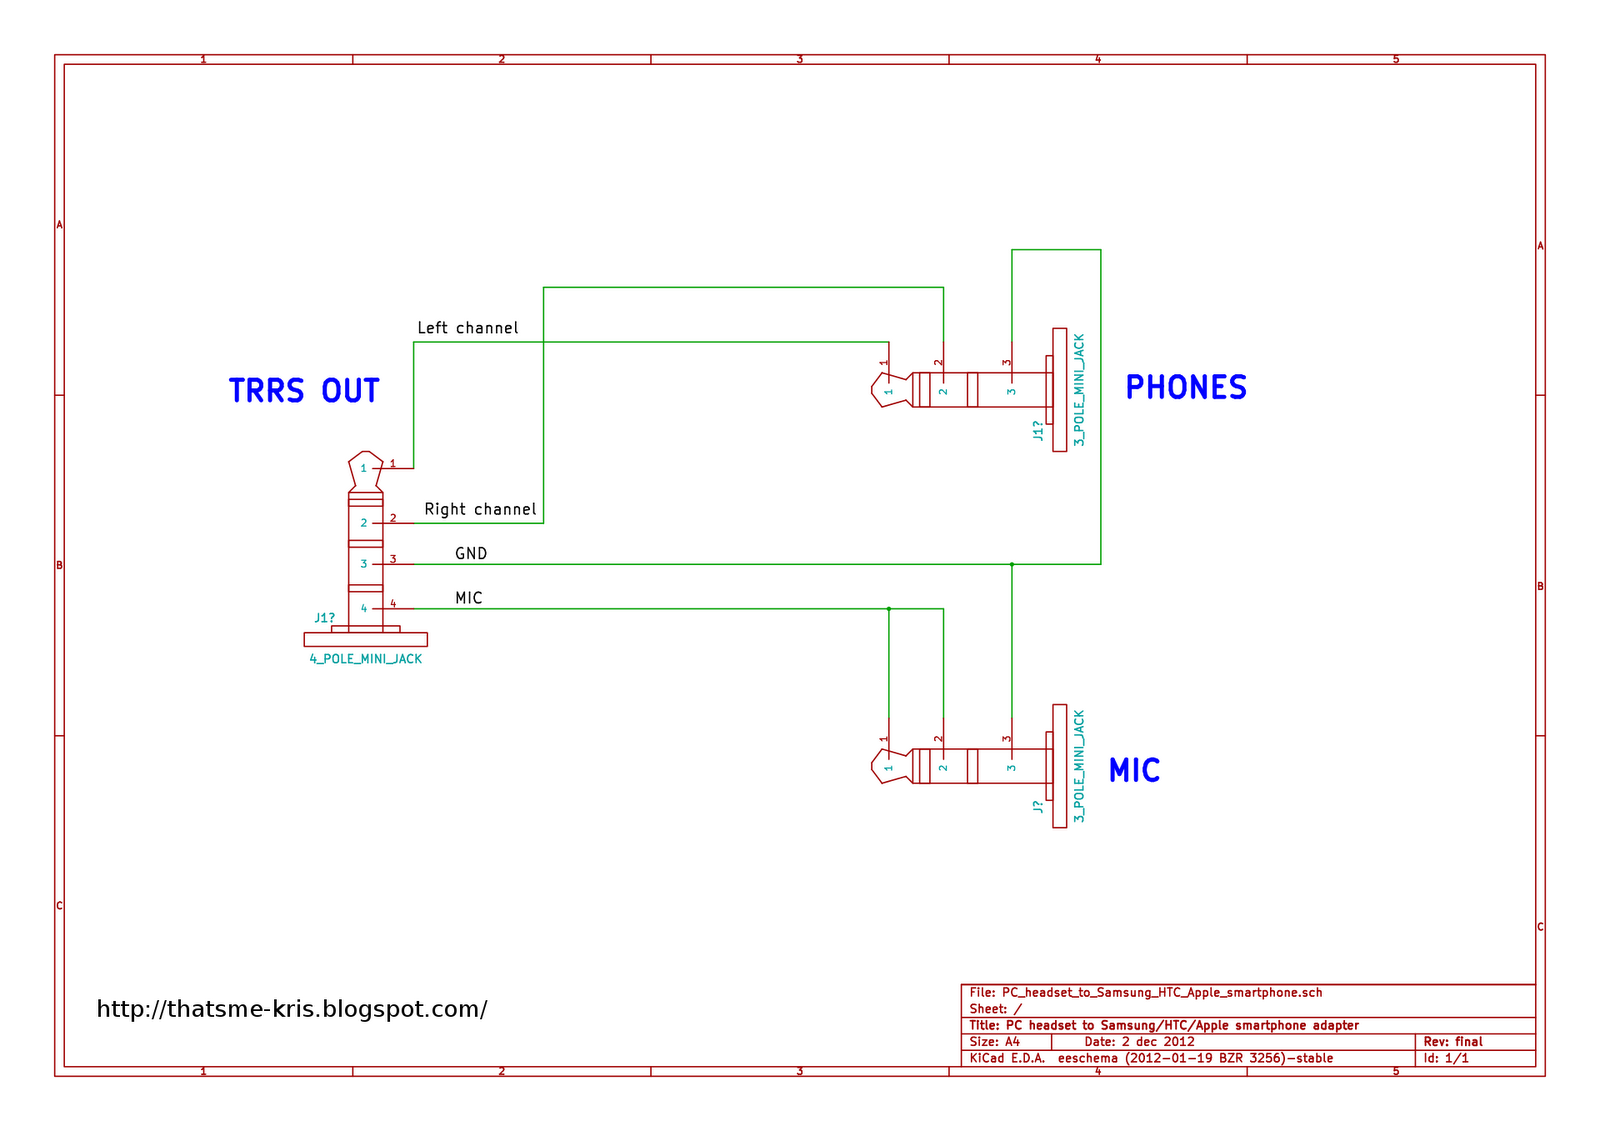 Samsung Headset Wiring Diagram Diagrams Pc Mic Soulreaver S Place Connecting To The Aircraft Connector